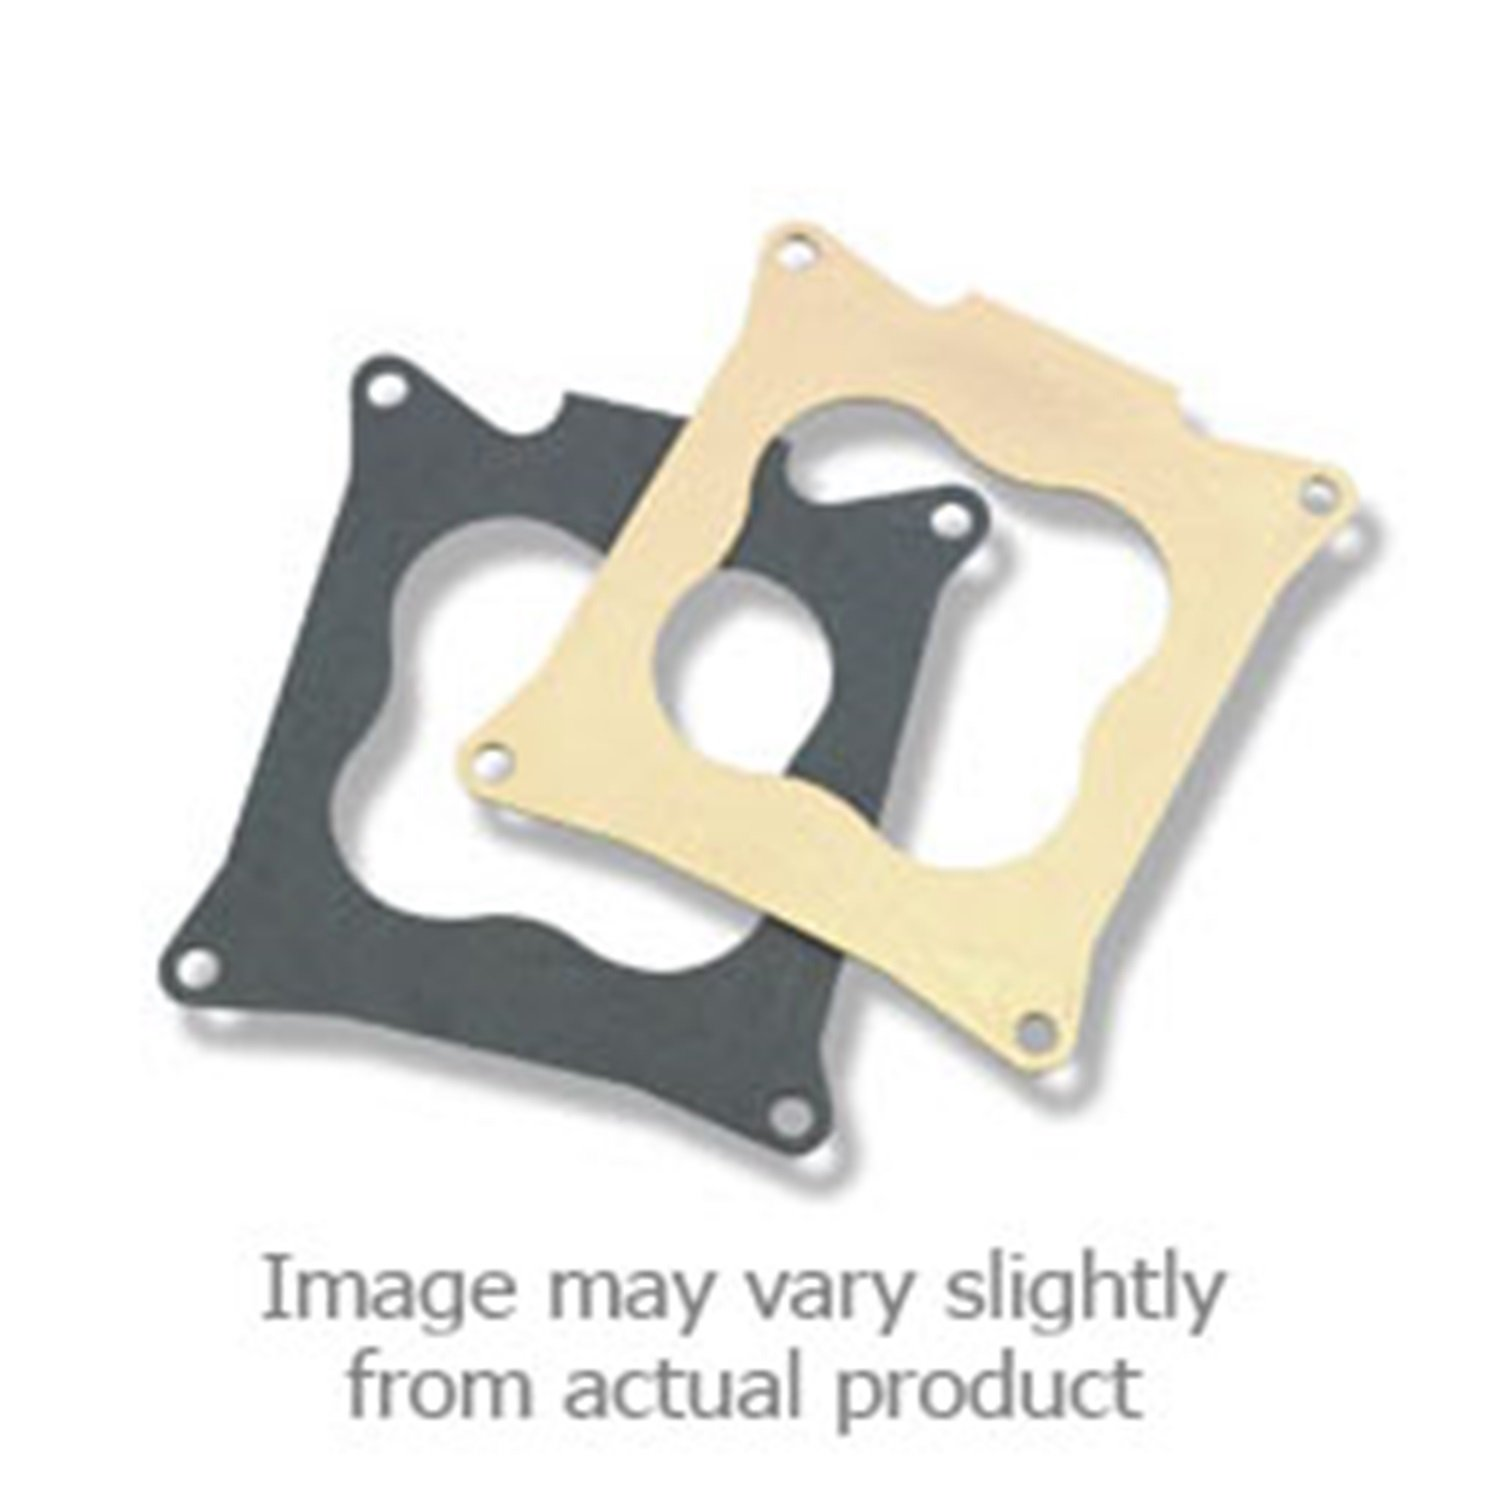 Holley 508-18 Throttle Body Base Plate And Gasket Set